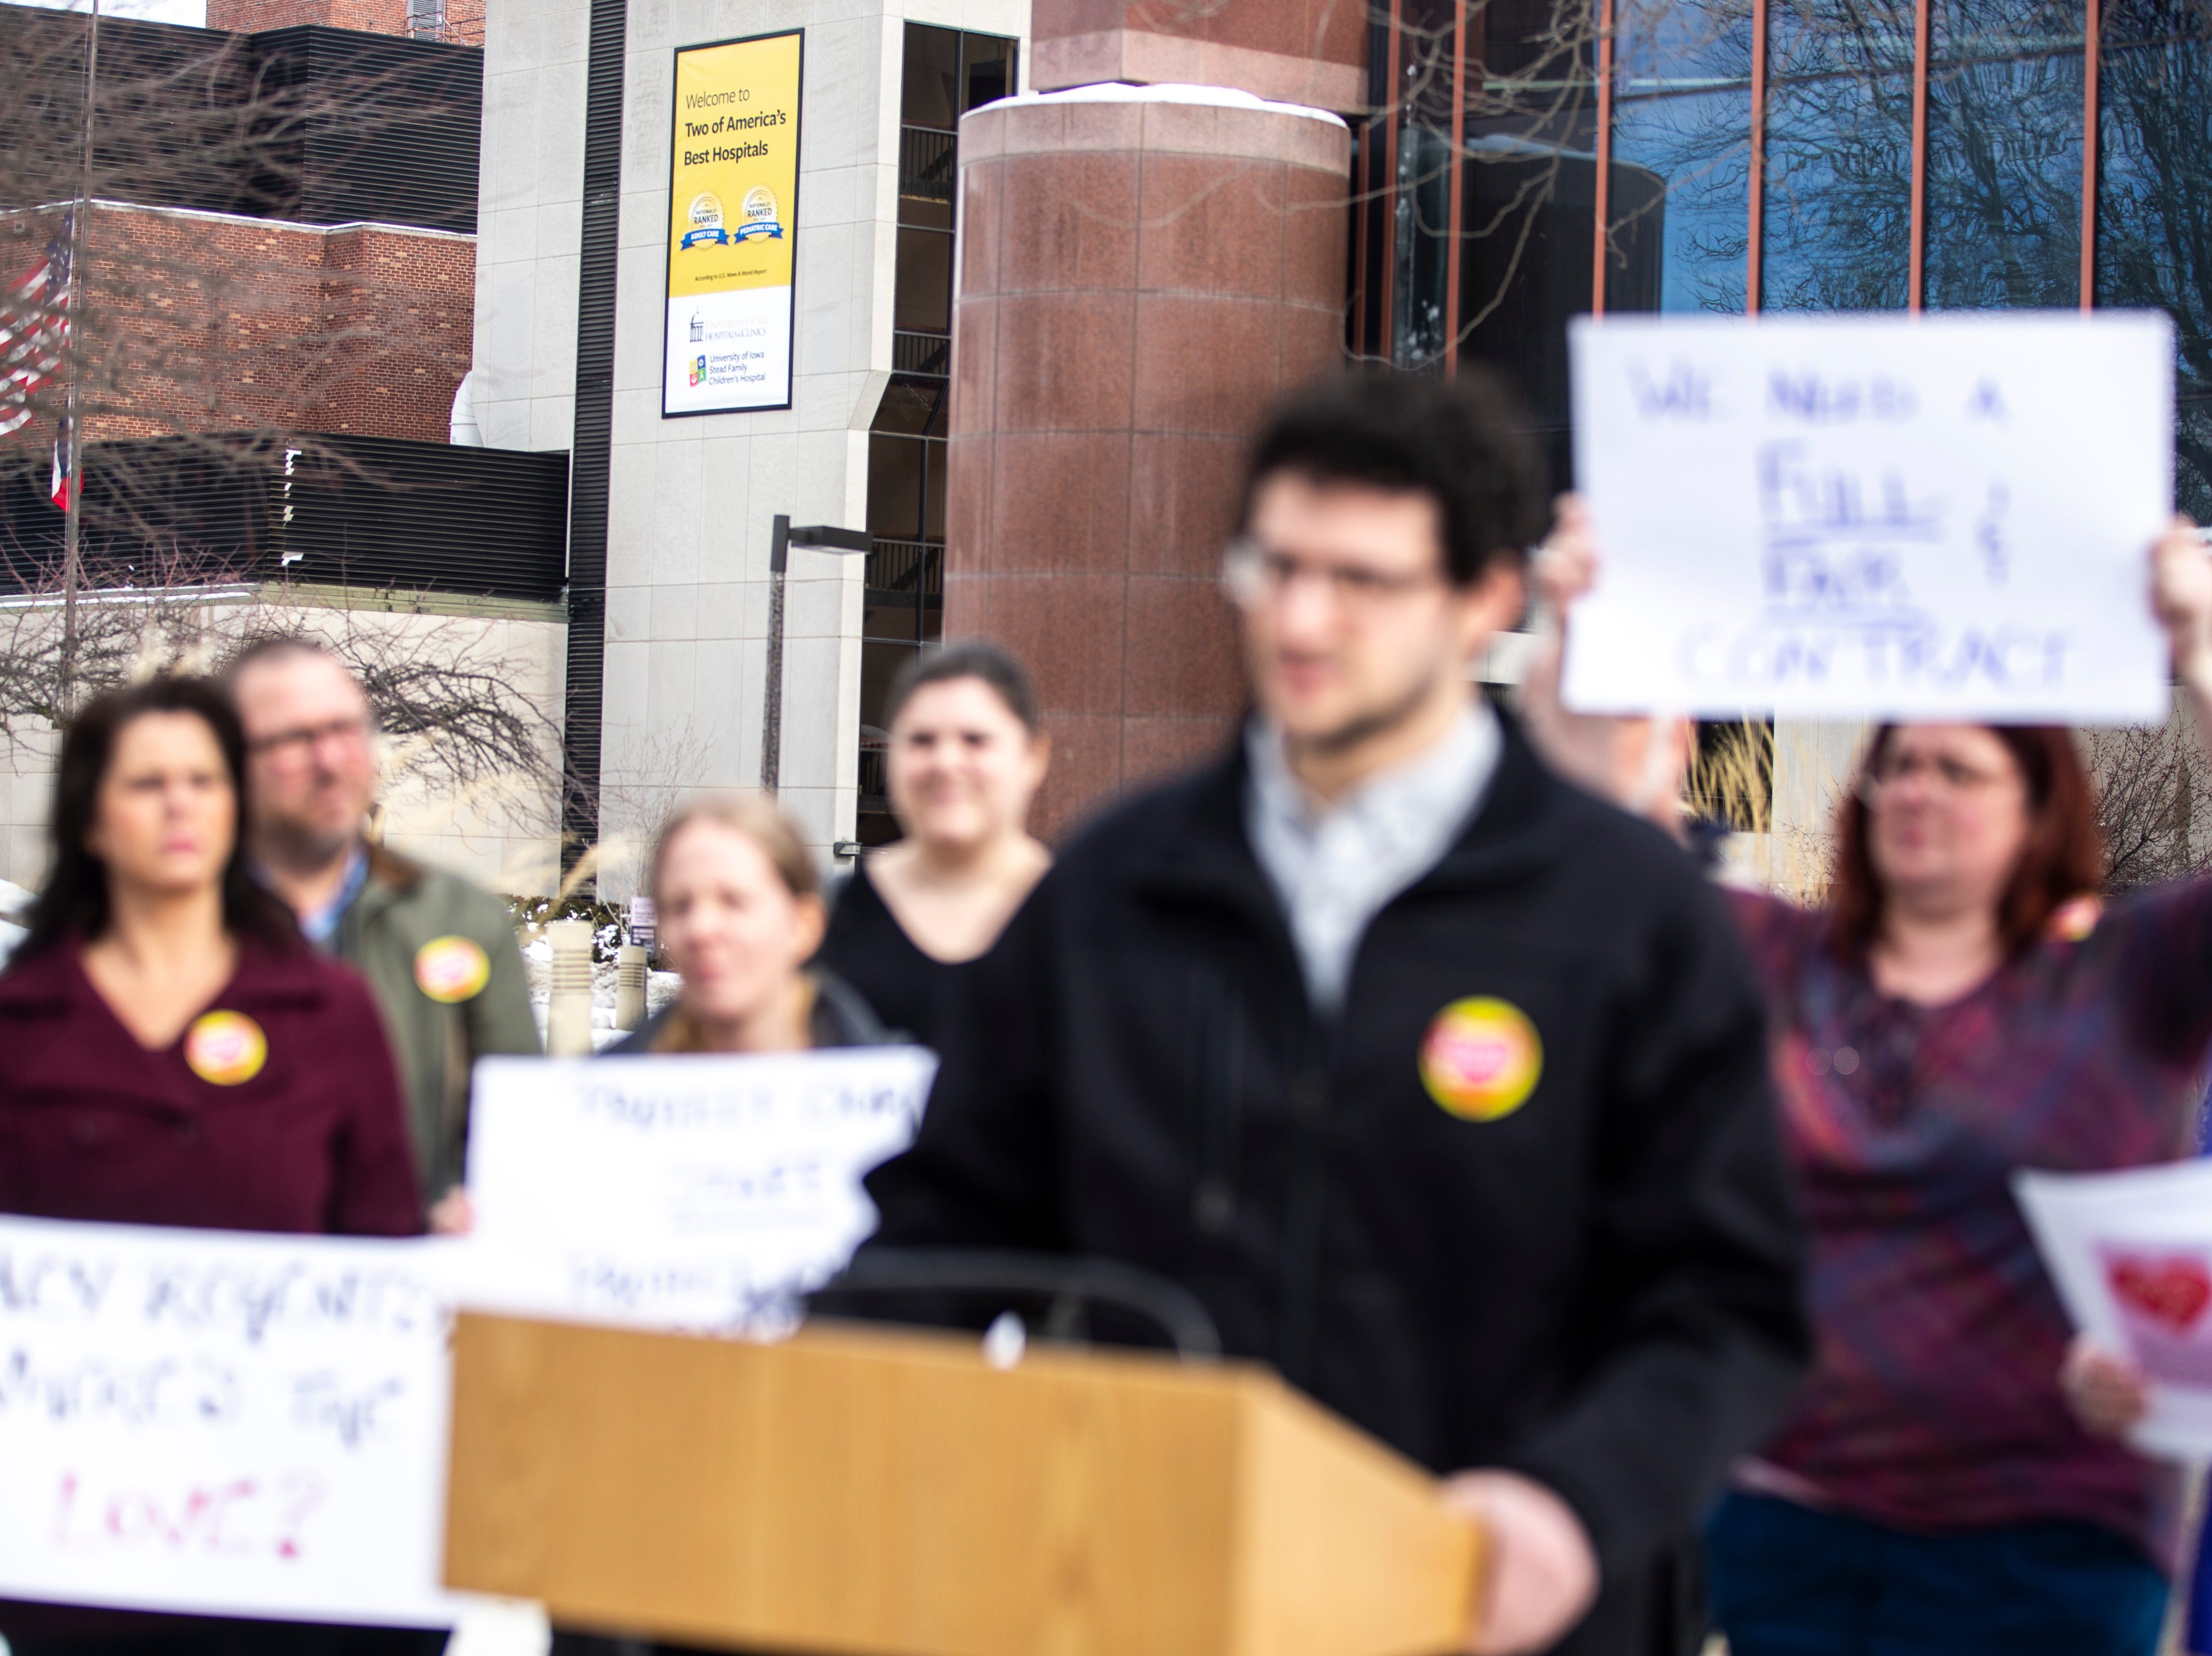 """UIHC union members hold up signs in front of the hospital that reads, """"Two of America's Best Hospitals"""" while Coen Olson, a medical lab scientist, speaks at a press conference during a Valentine's Day protest over bargaining with the hospital CEO and Regents, Thursday, Feb. 14, 2019 at the University of Iowa Hospitals and Clinics in Iowa City, Iowa."""